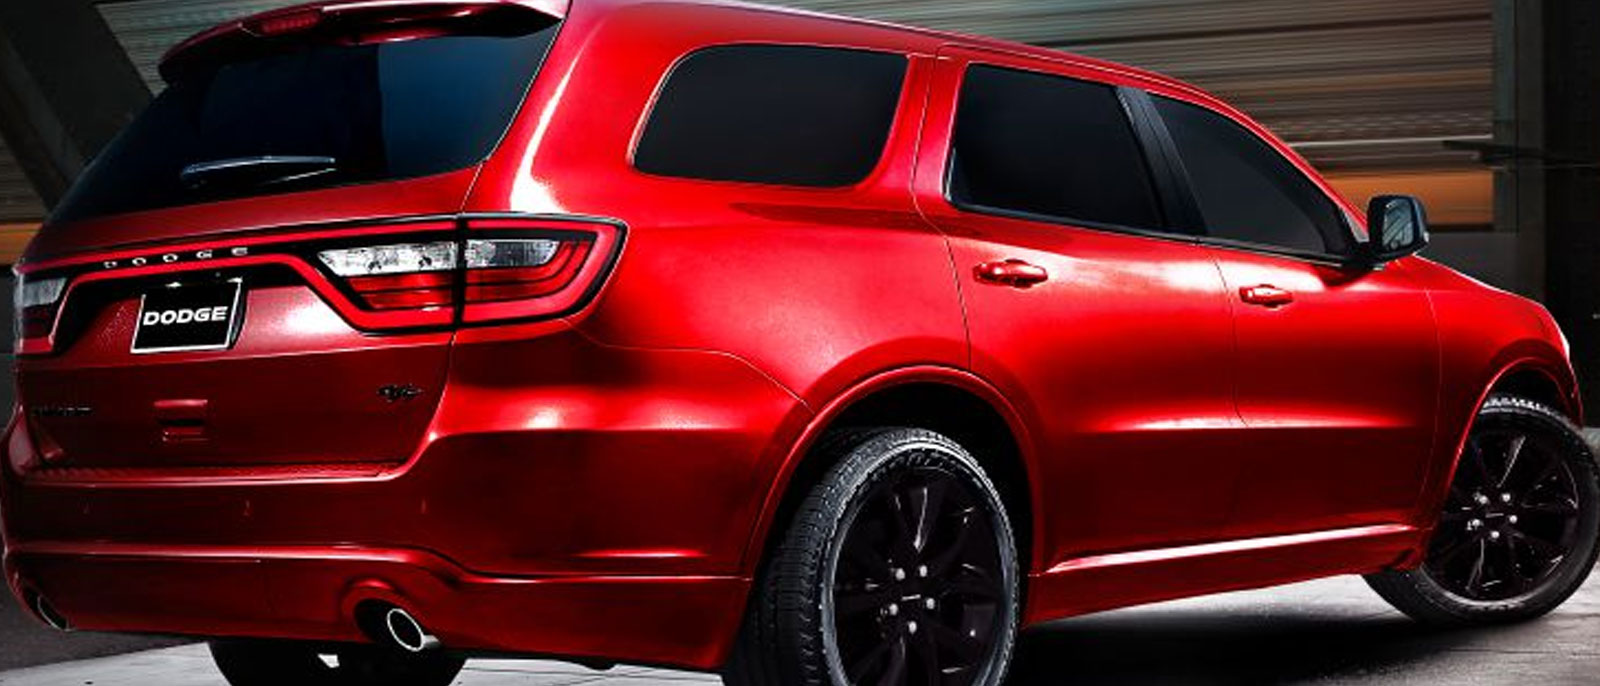 Jeep Dealership Edmonton >> 2017 Dodge Durango Edmonton | Derrick Dodge